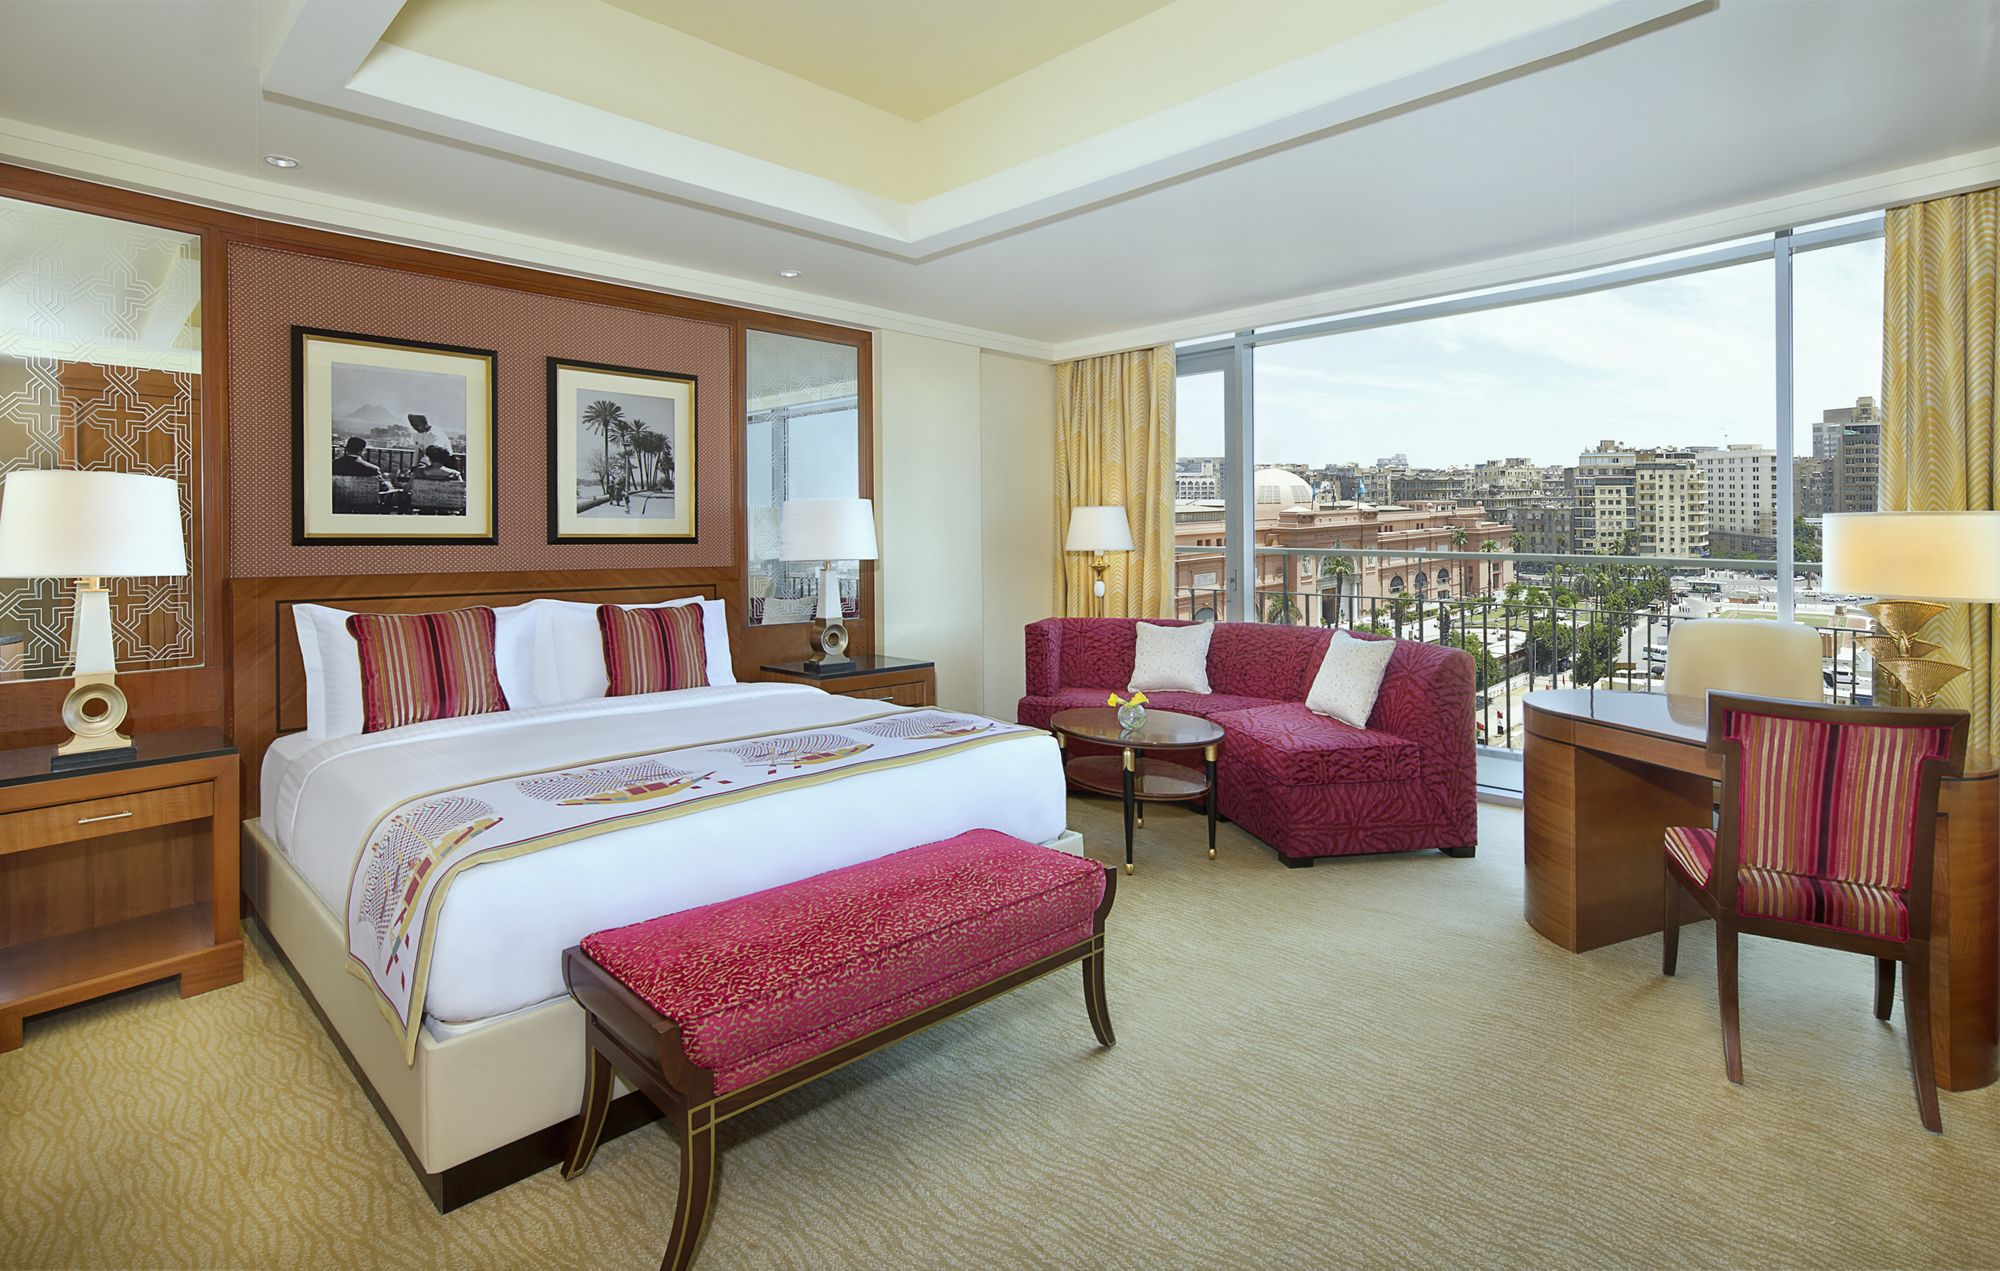 Guest room with a king-size bed, plush red furnishings, wood accents and floor-to-ceiling views of the city